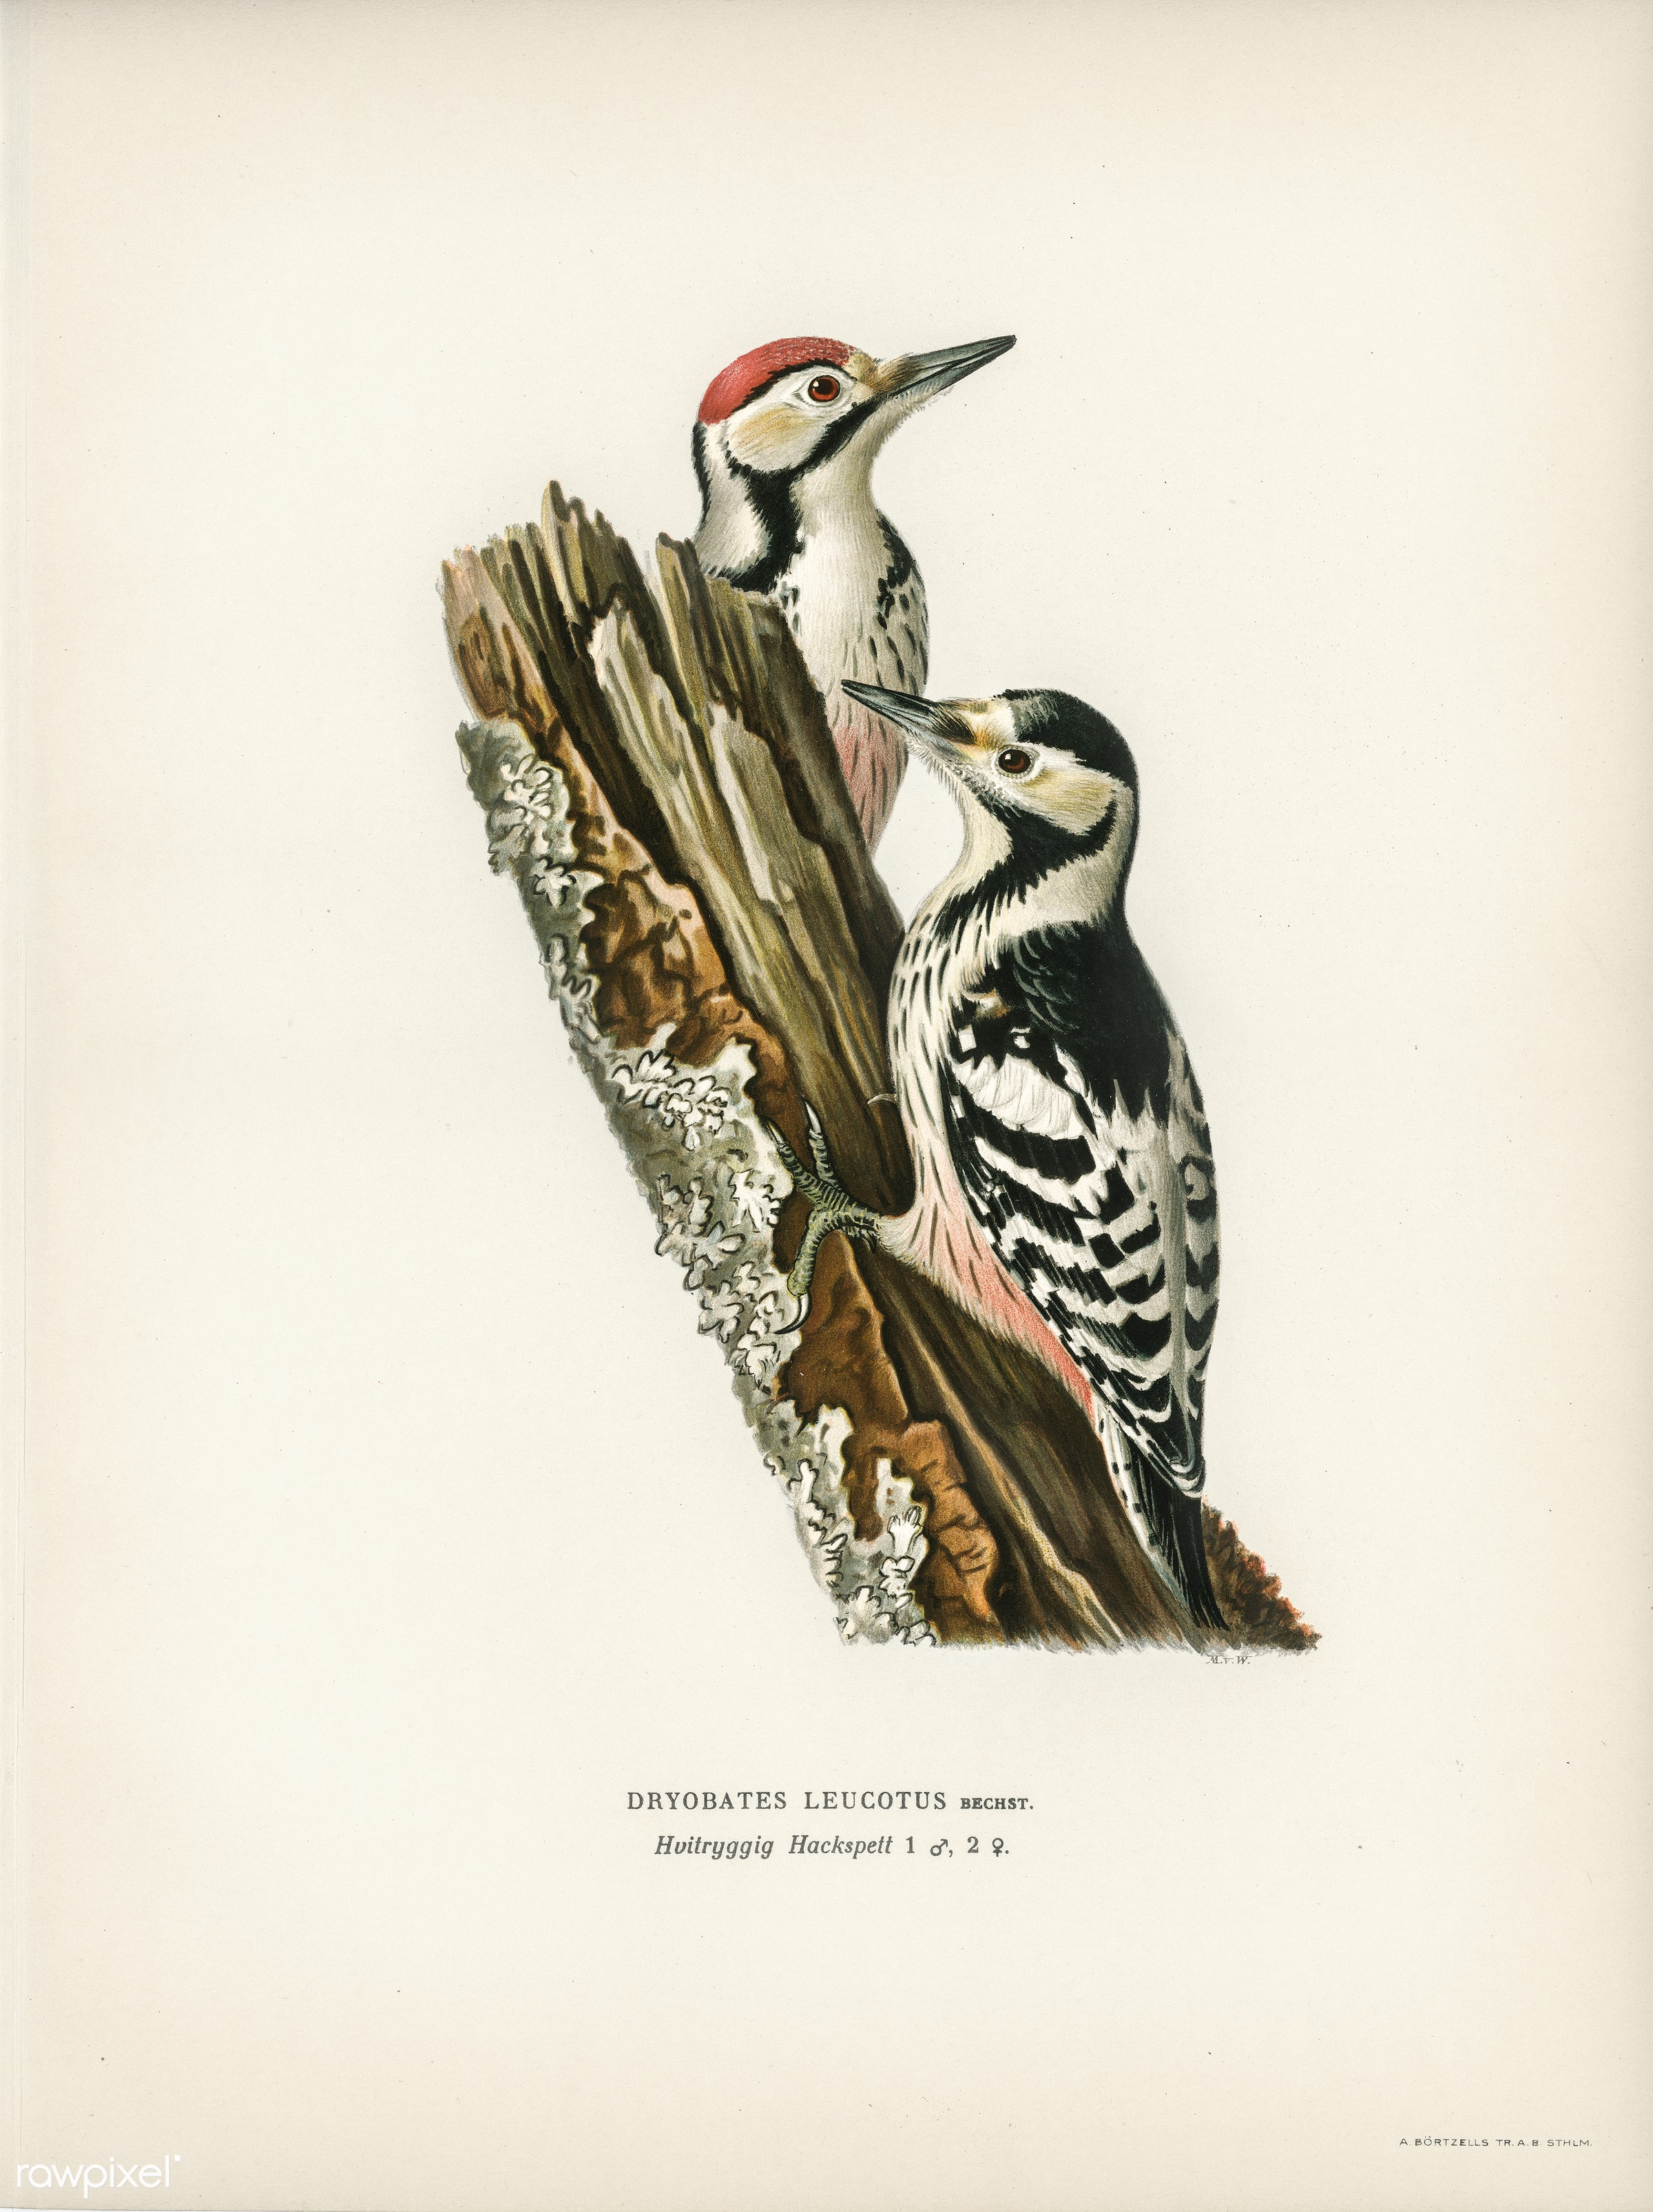 White-backed woodpecker 1♀ , 2♂ (Dryobates leucotus) illustrated by the von Wright brothers. Digitally enhanced from our own...